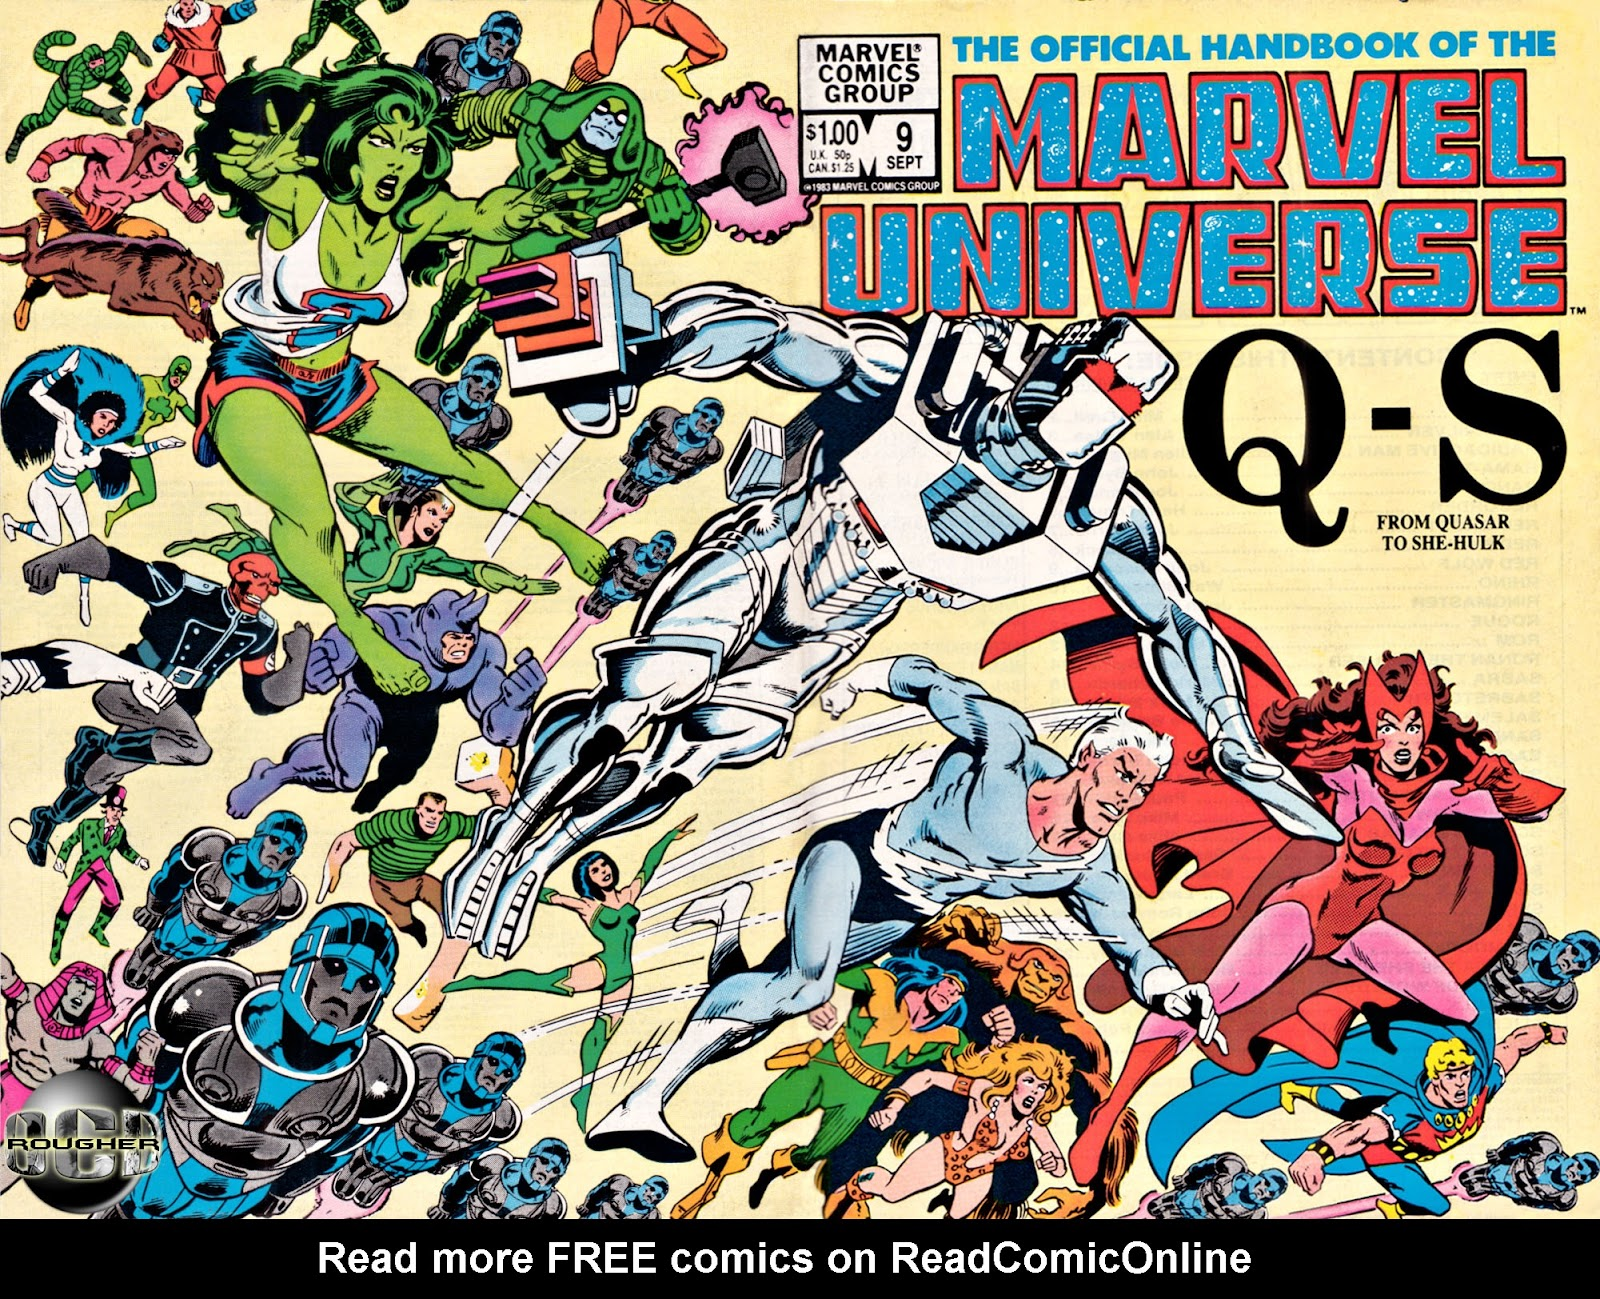 The Official Handbook of the Marvel Universe 9 Page 1